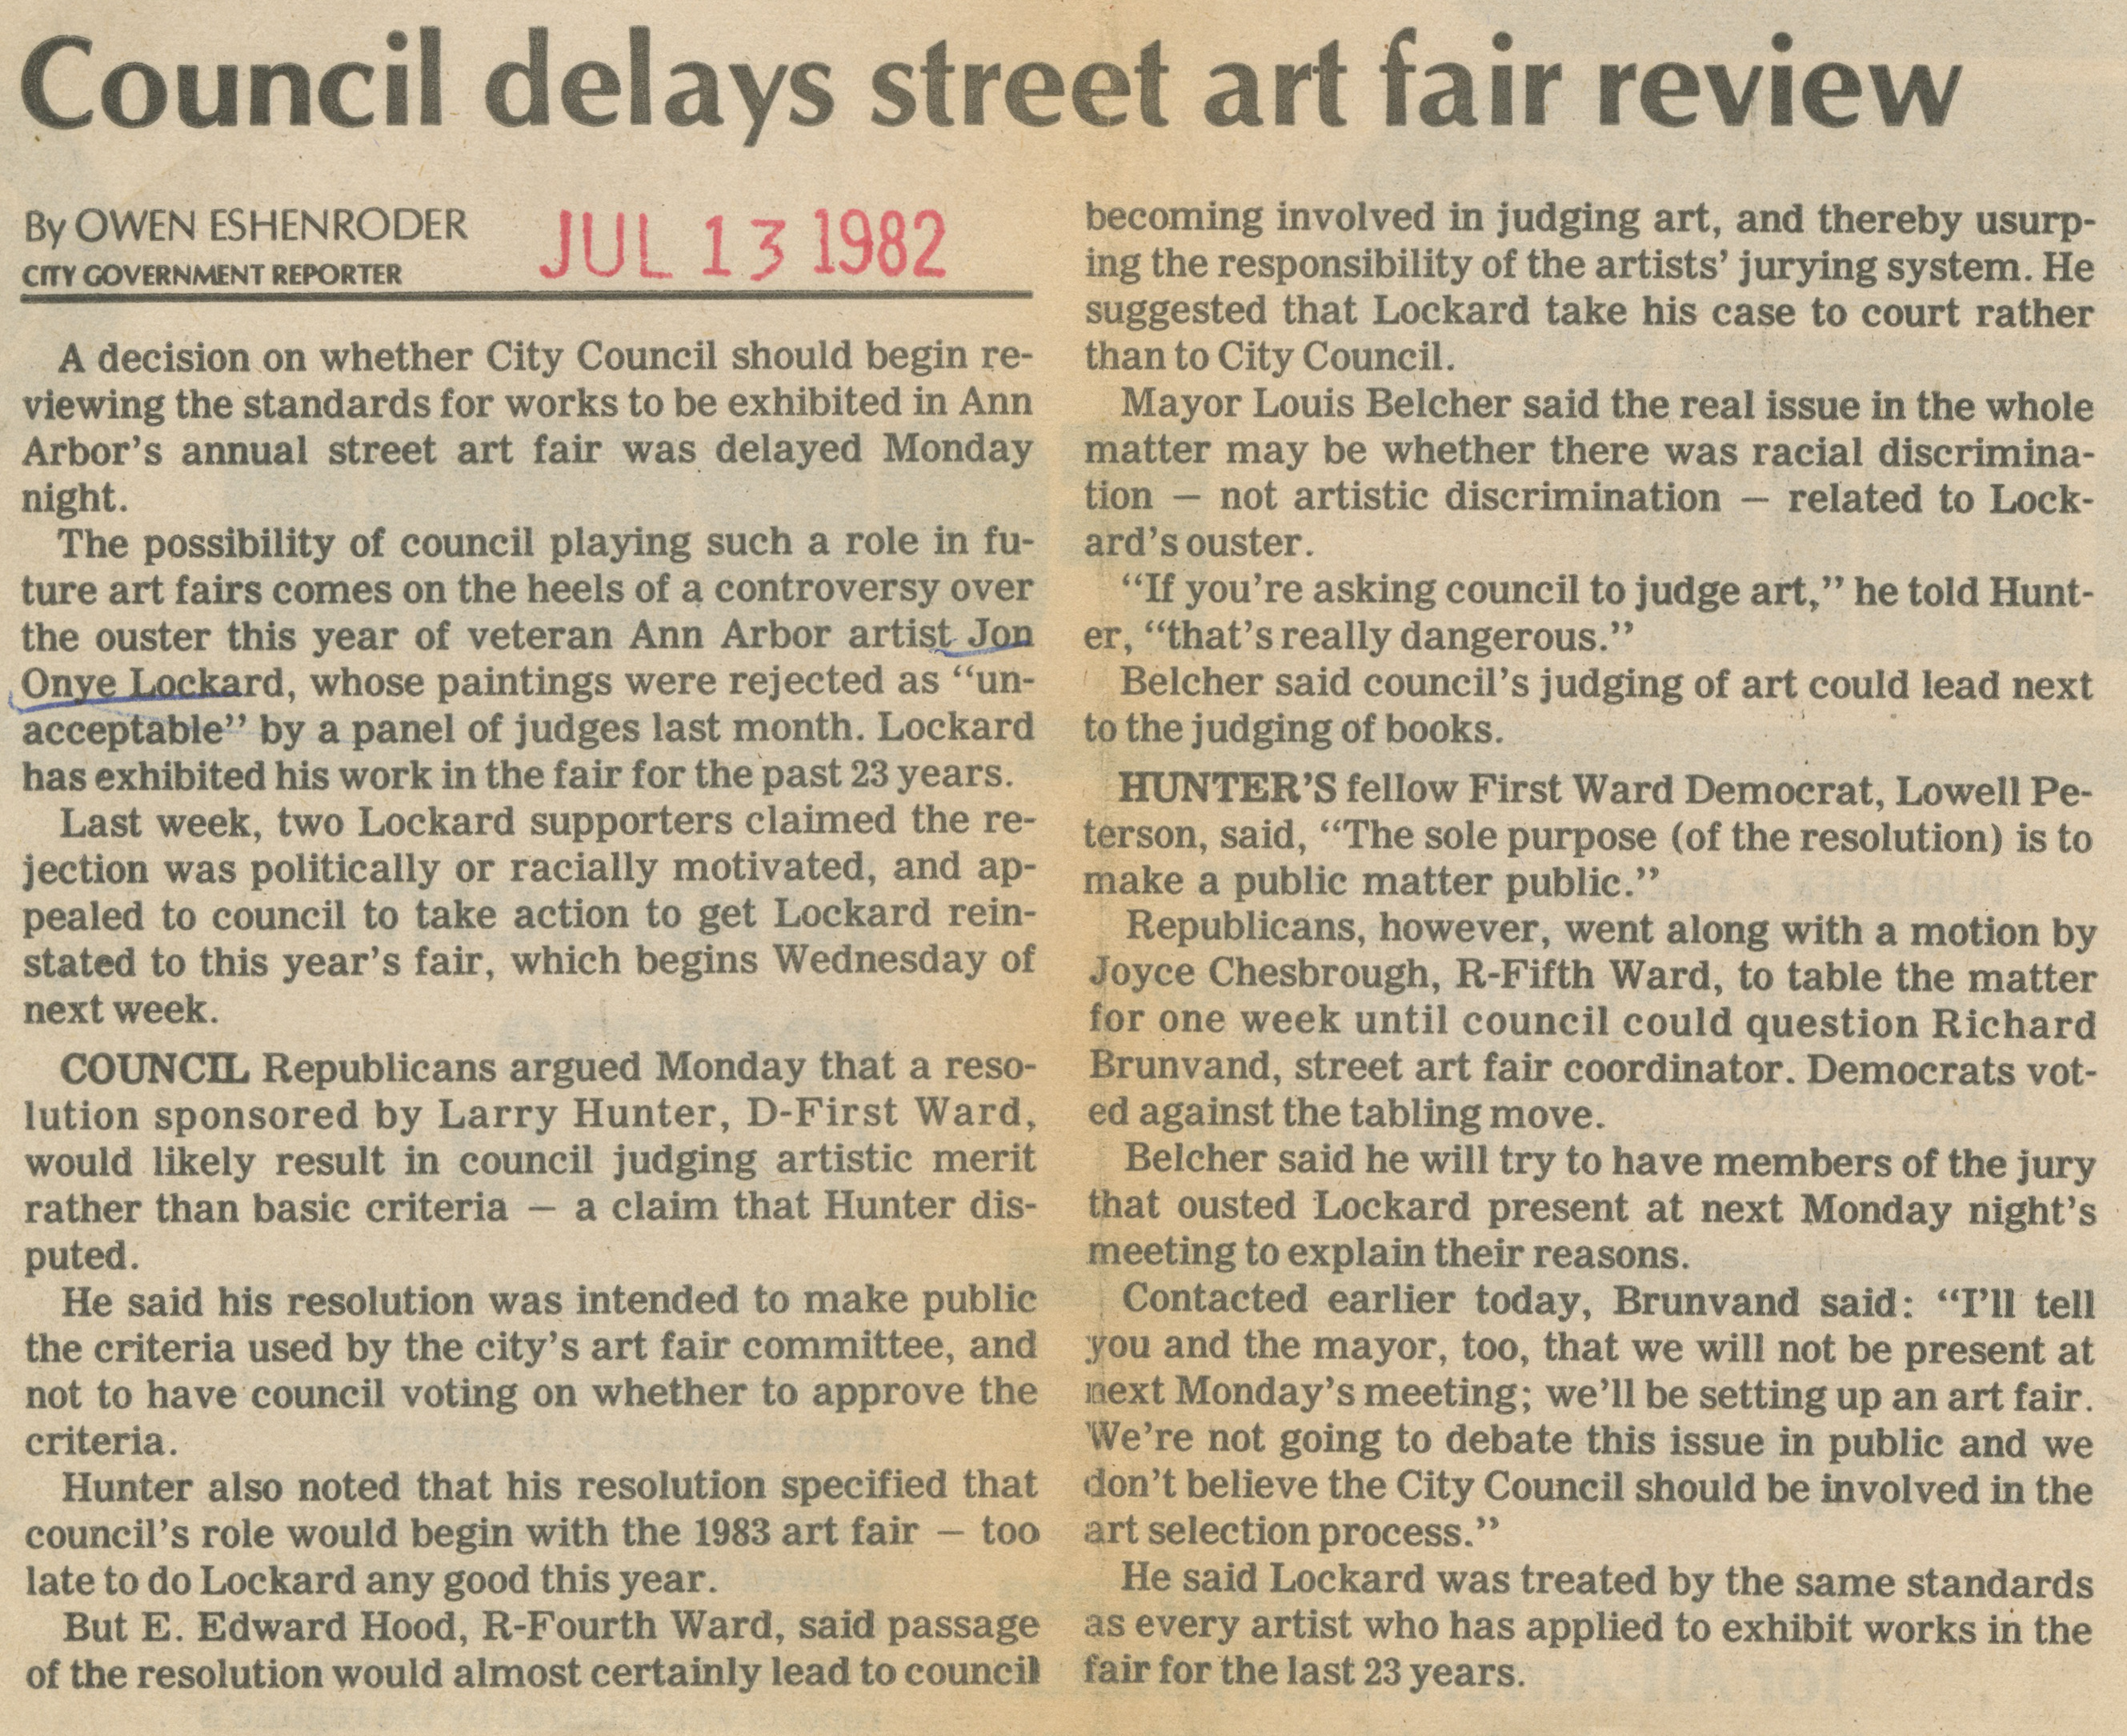 Council delays street art fair review image